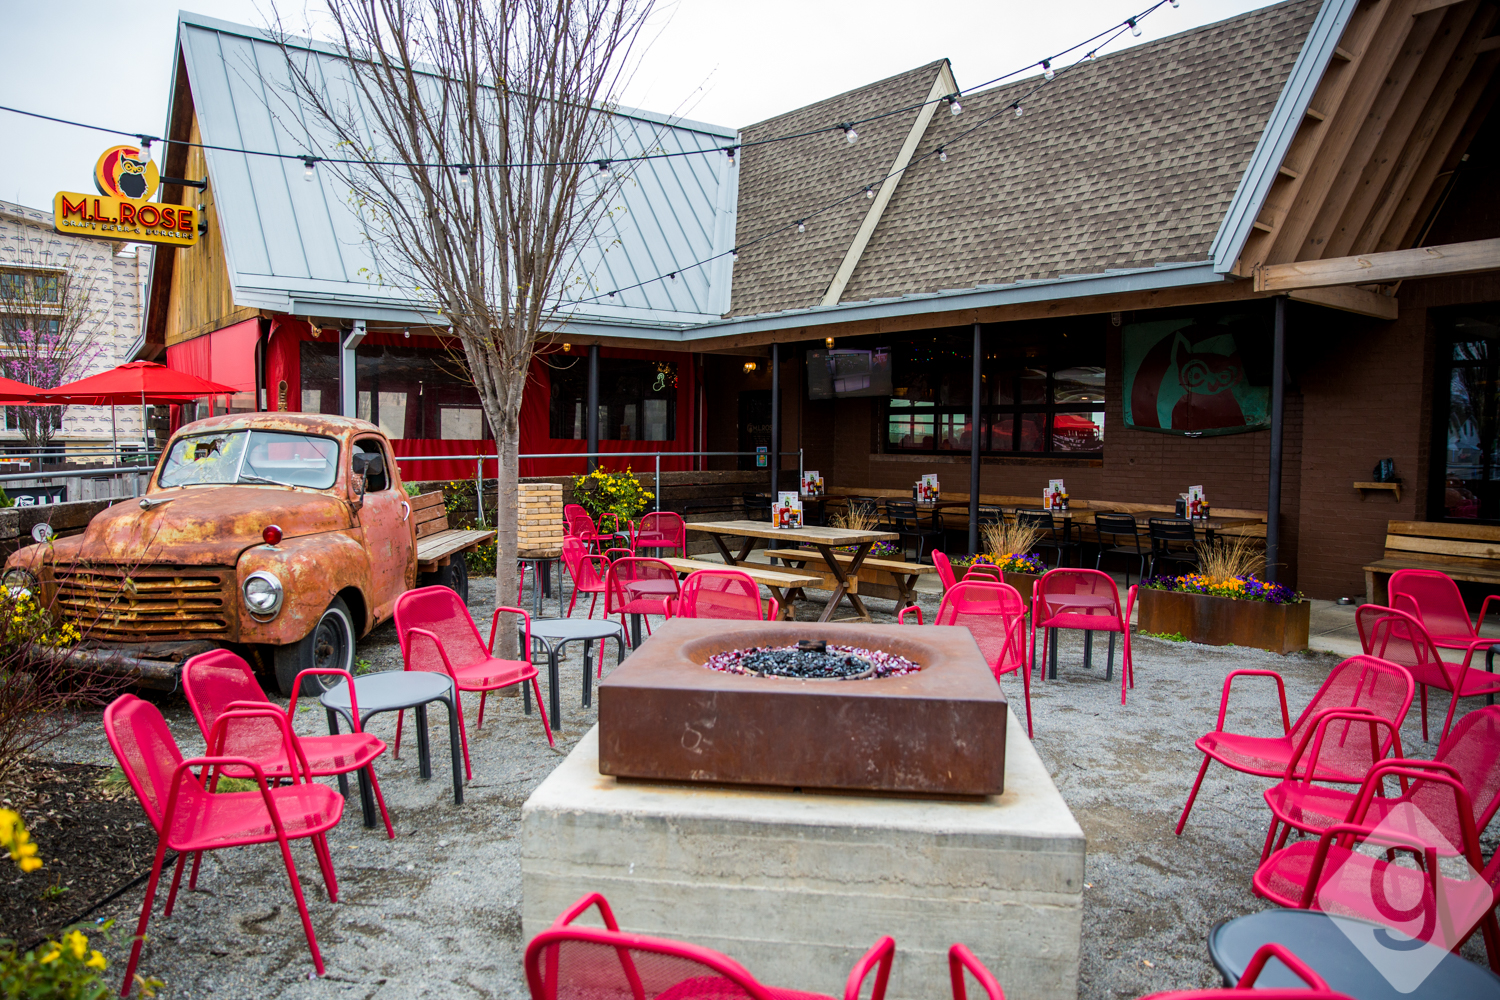 Captivating Both Locations Have Large Patios With Giant Jenga For Entertainment And  Fire Pits For Ambience And Warmth. The Melrose Location Is Mostly Covered,  ...